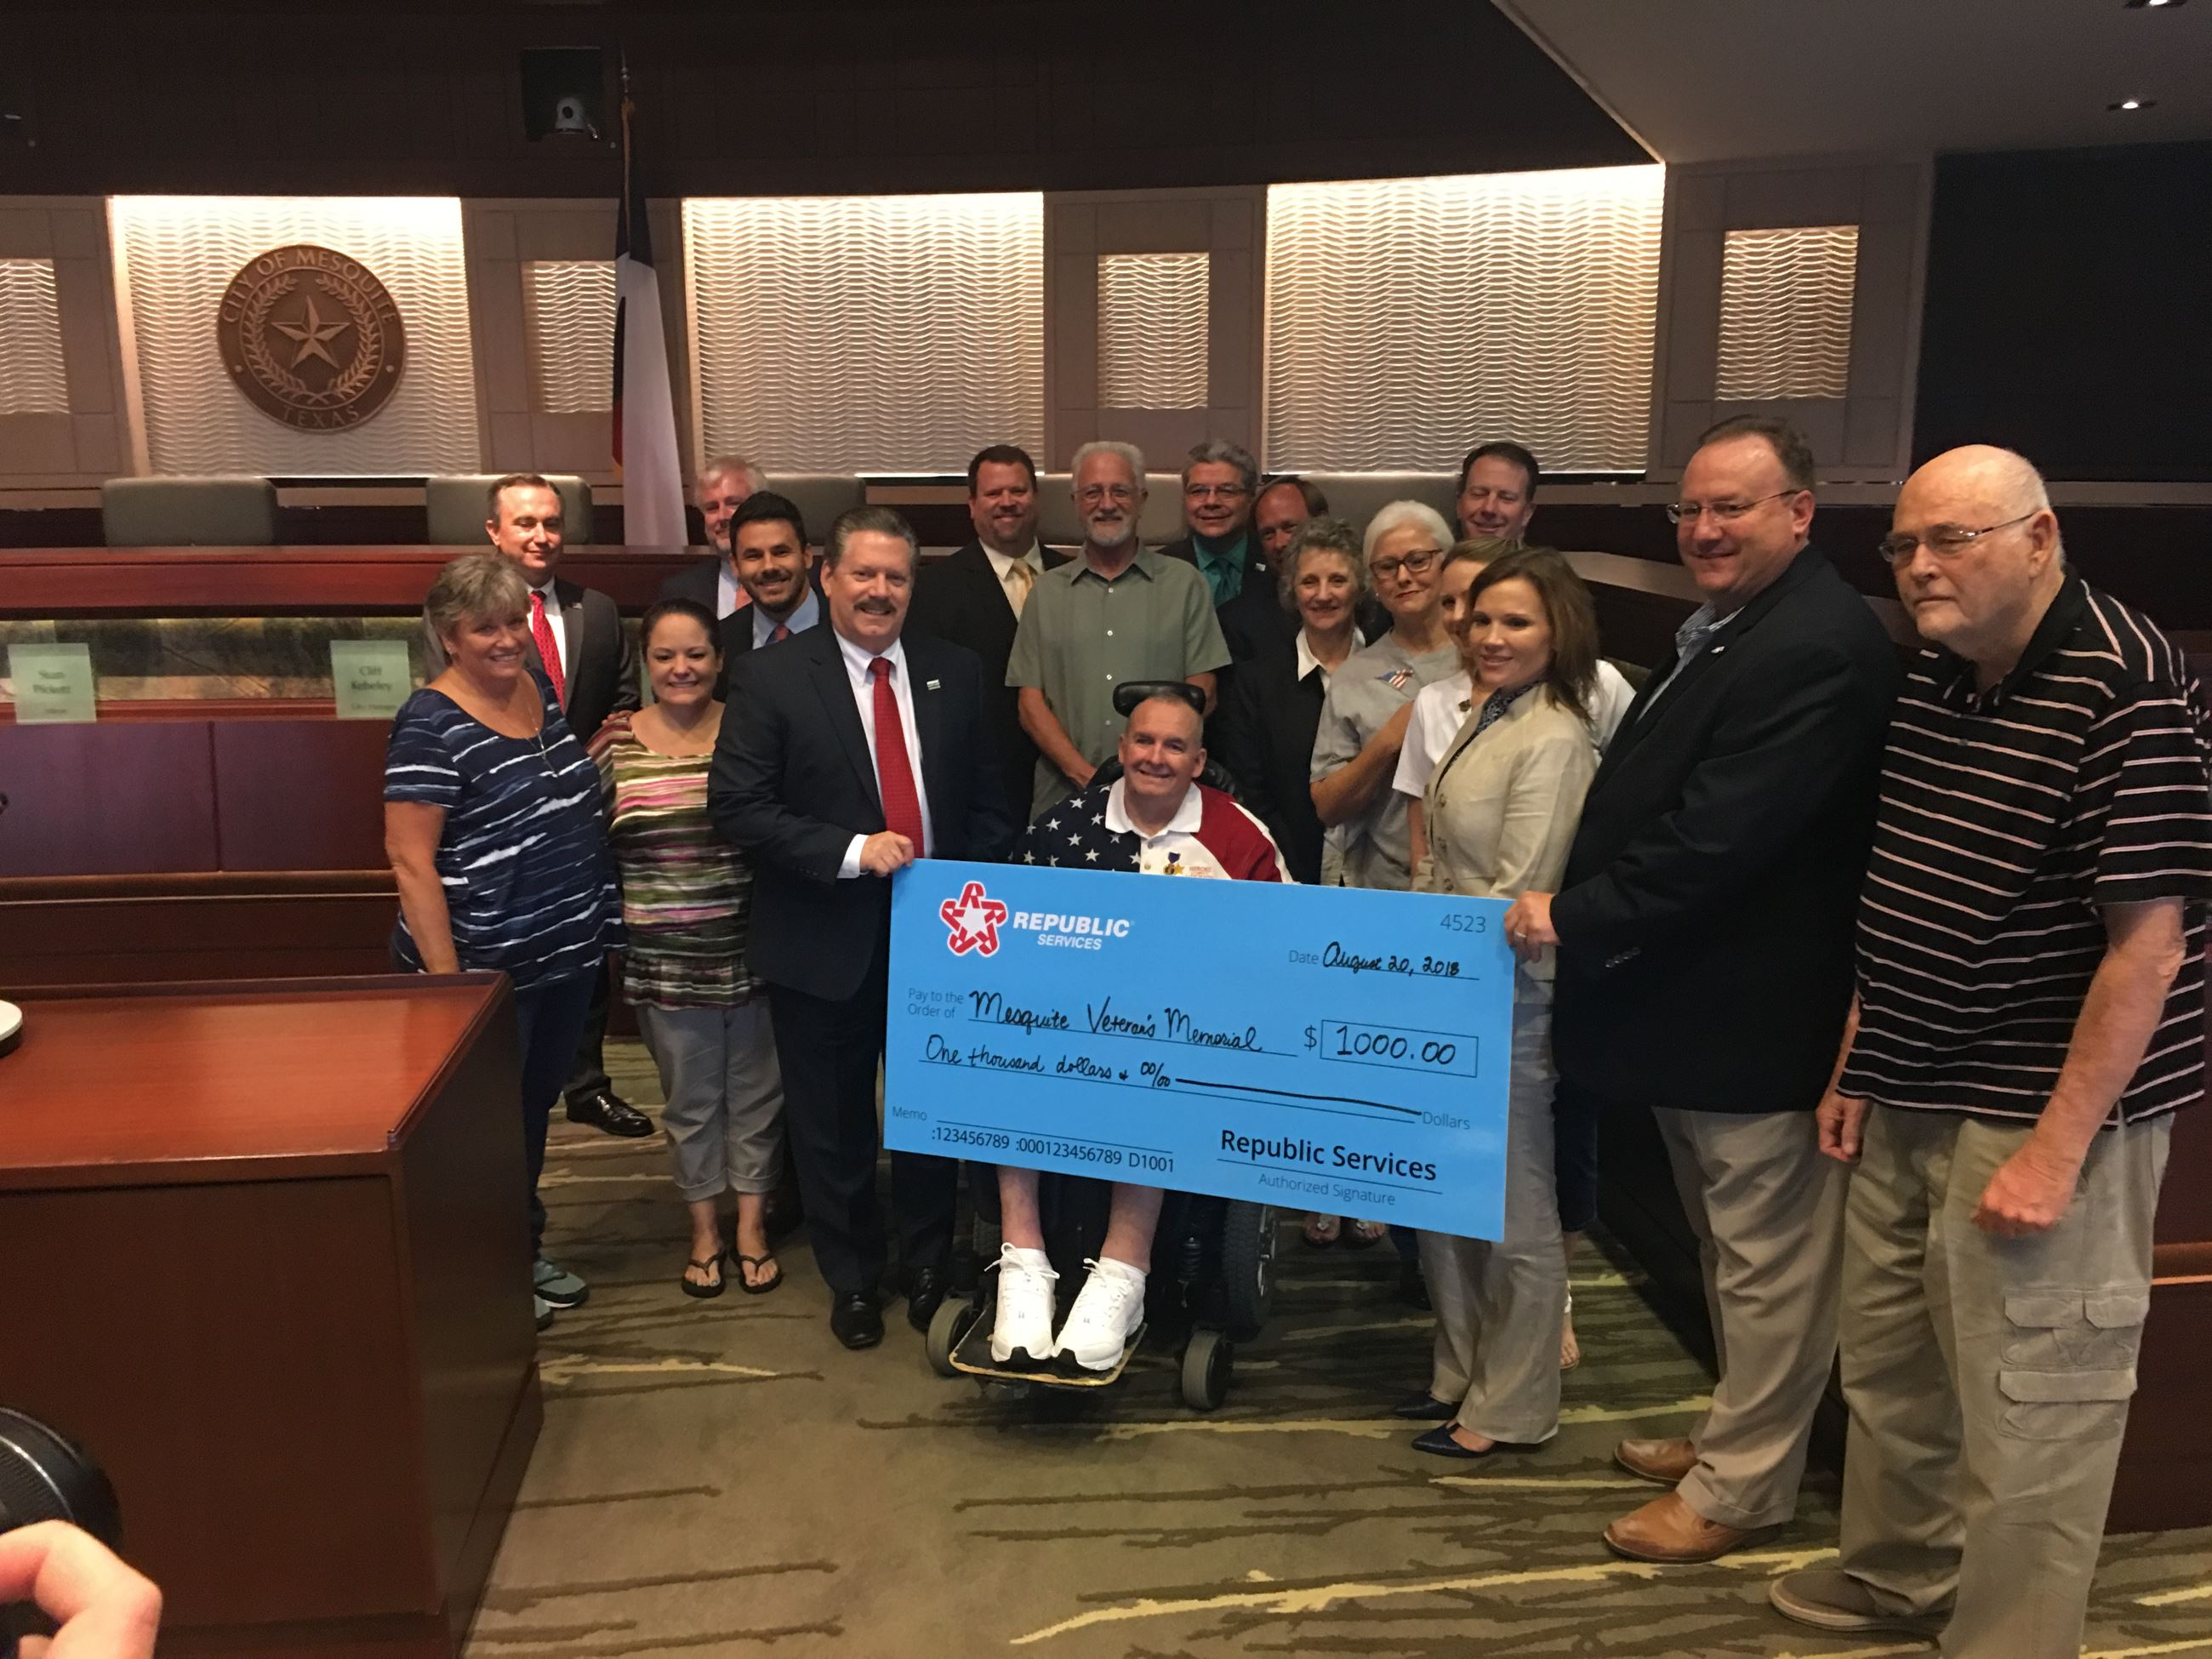 Republic Services donates to veterans memorial